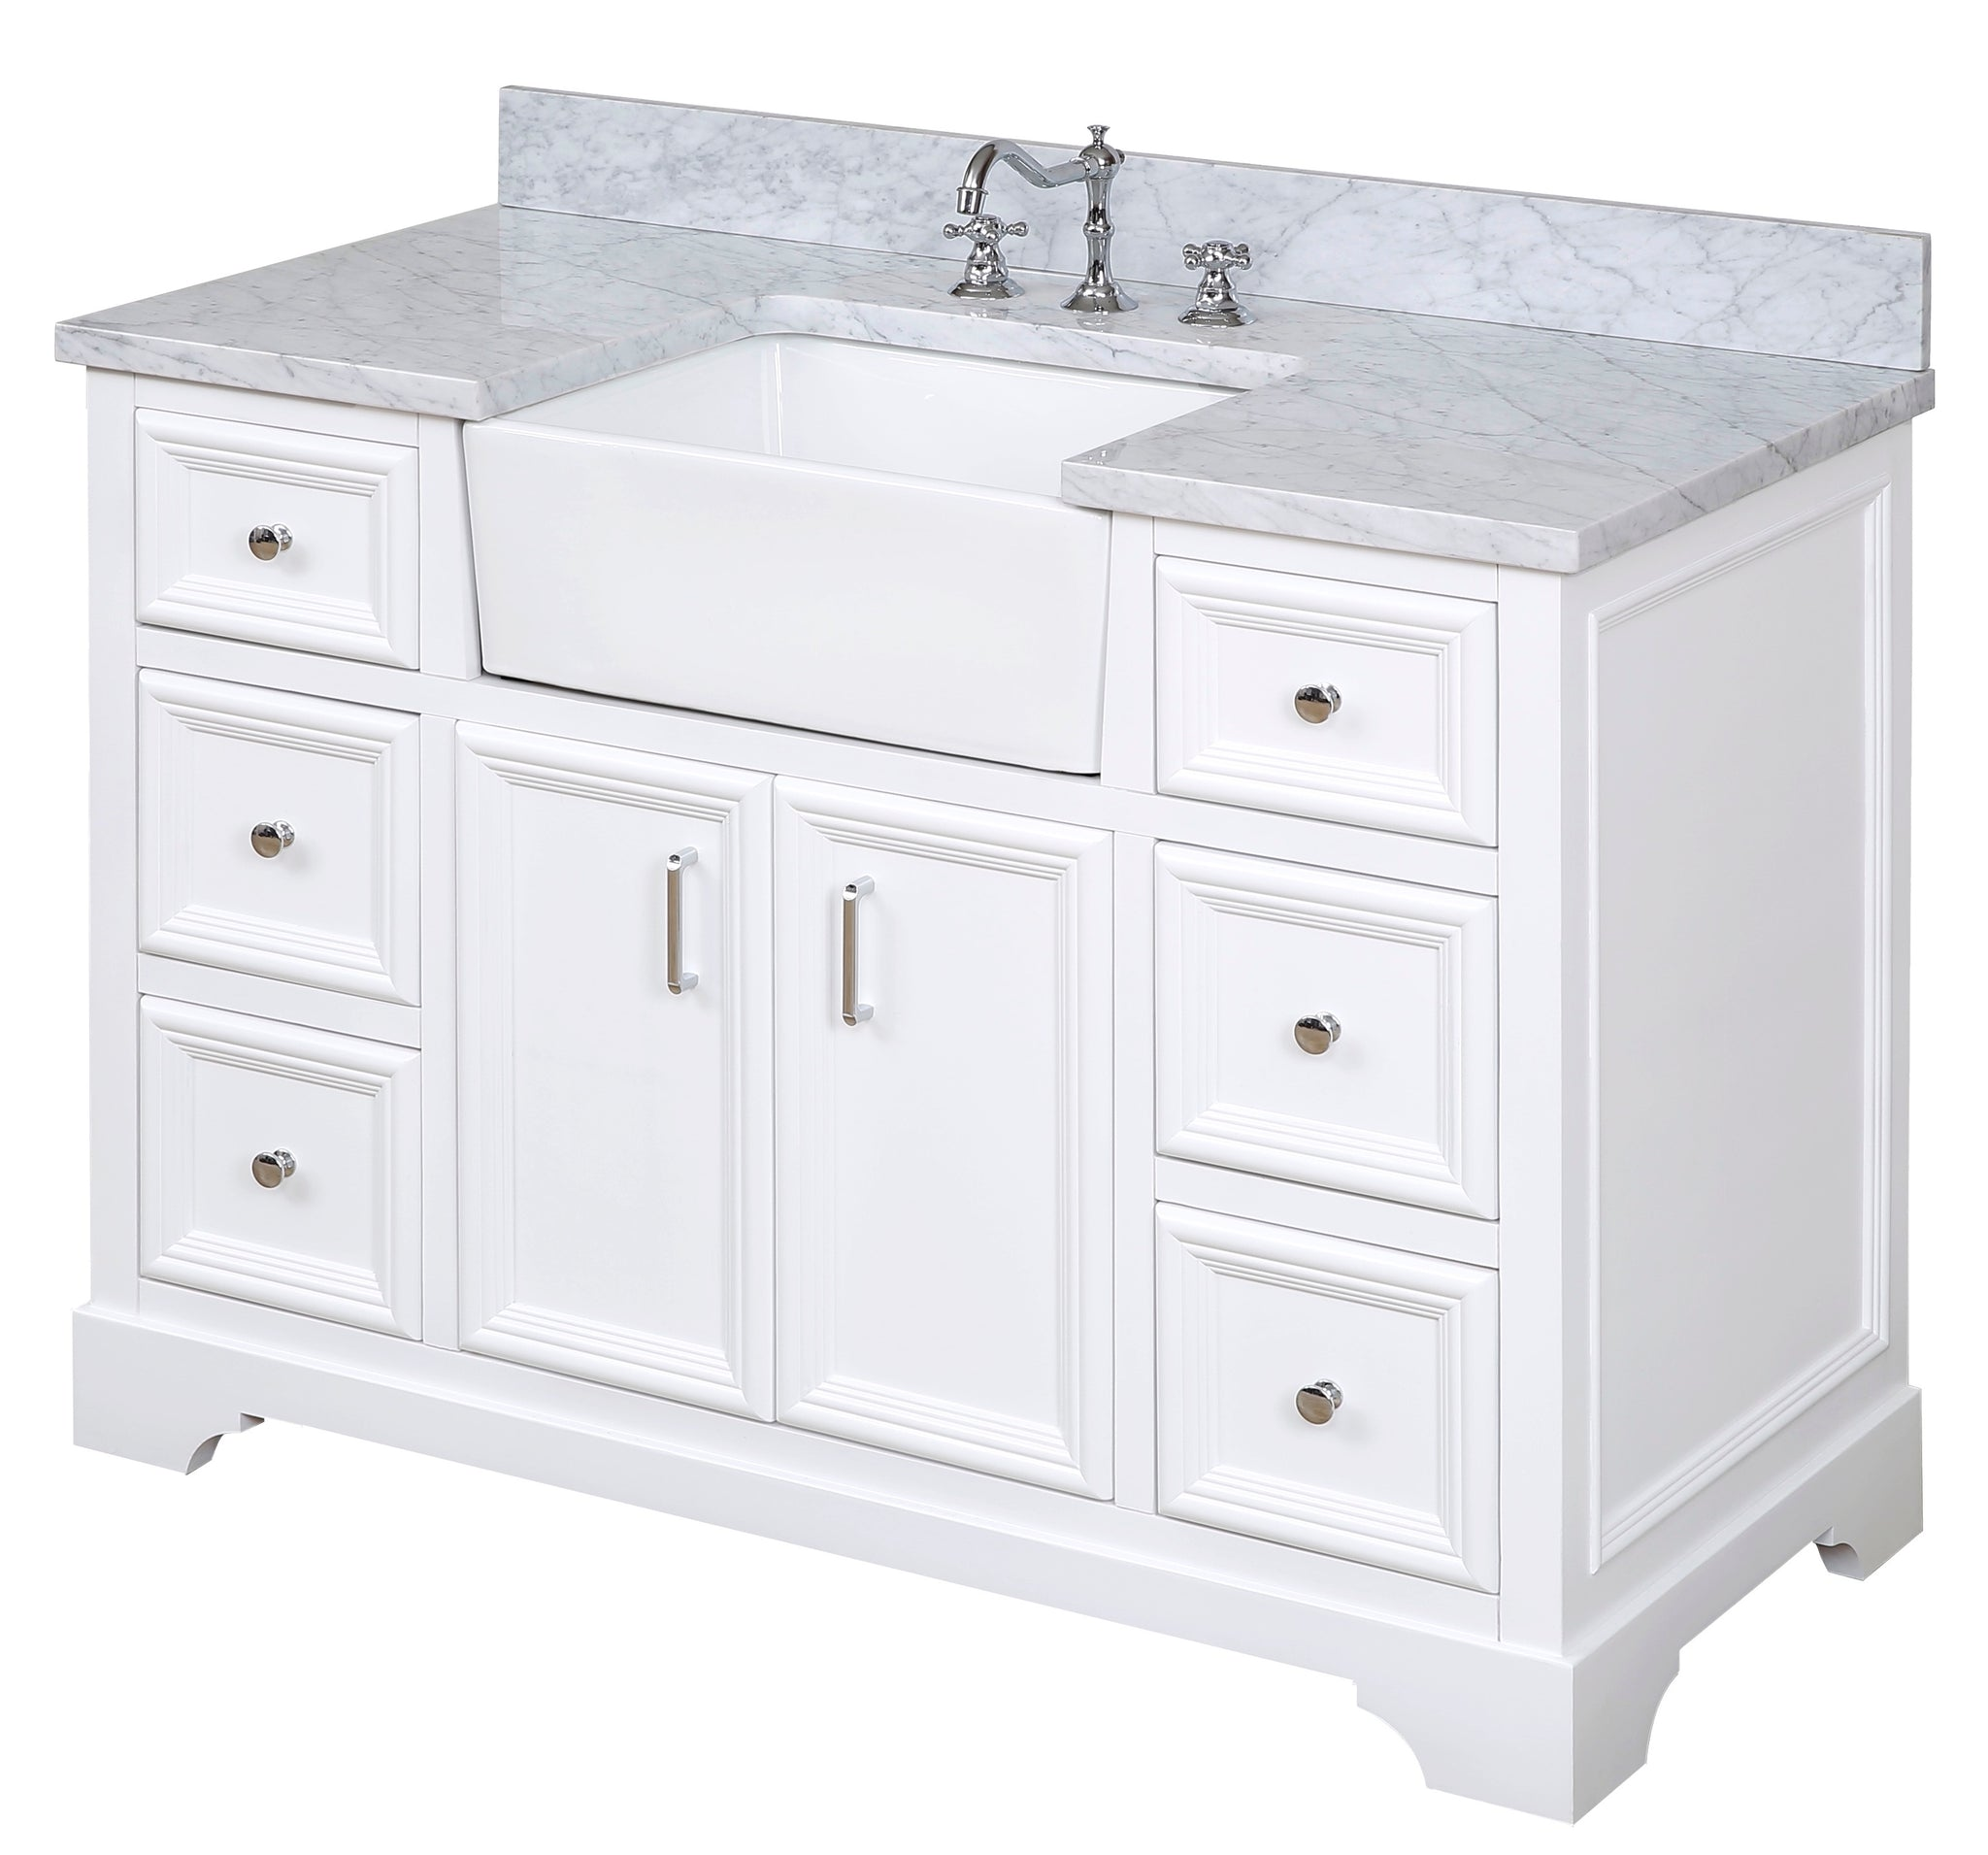 Zelda 48 Farmhouse Bathroom Vanity Apron Sink Carrara Marble Top Kitchenbathcollection